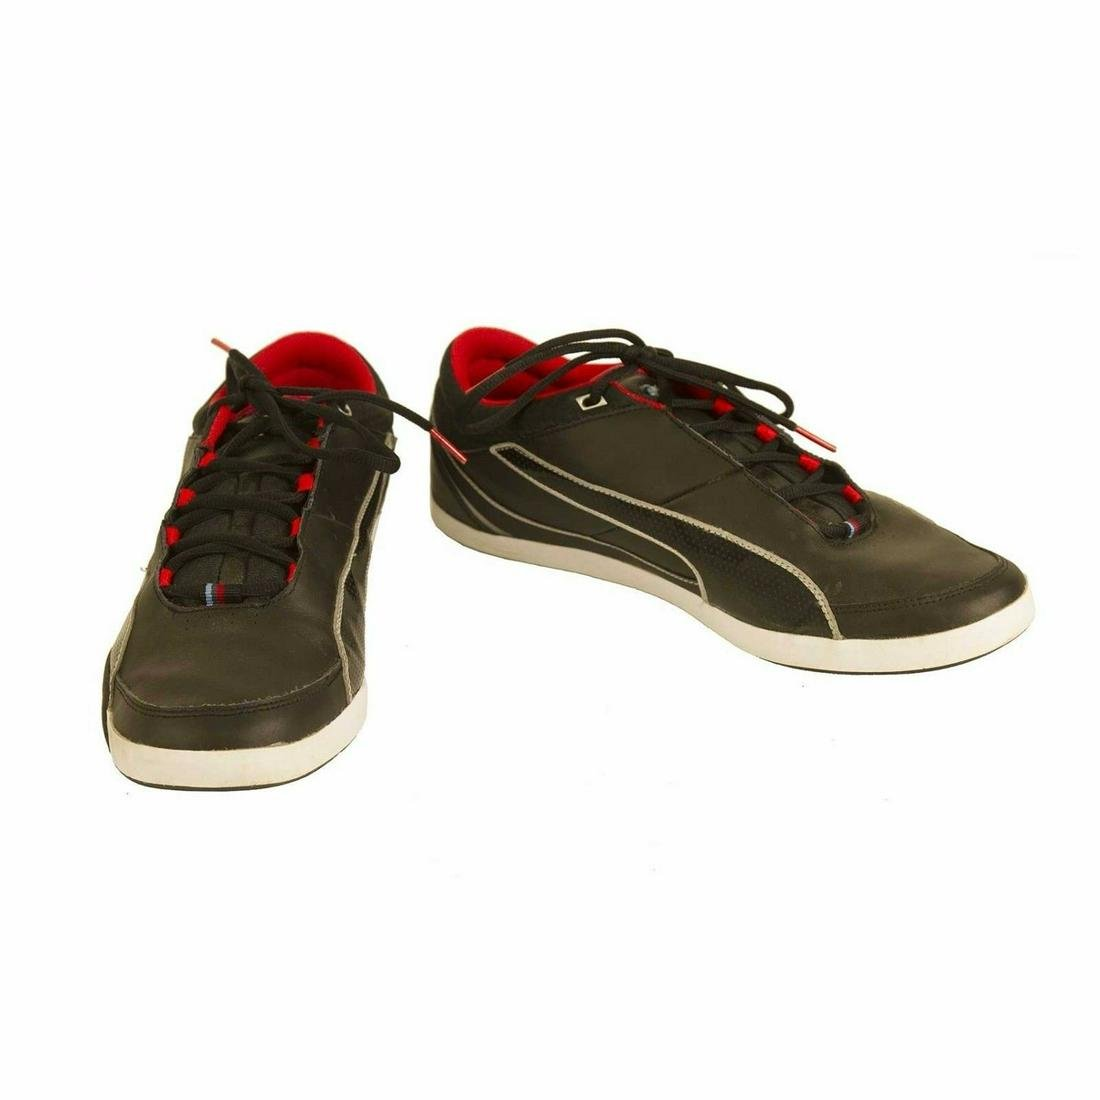 Puma BMW M series Black leather Shoes Sneakers Trainers